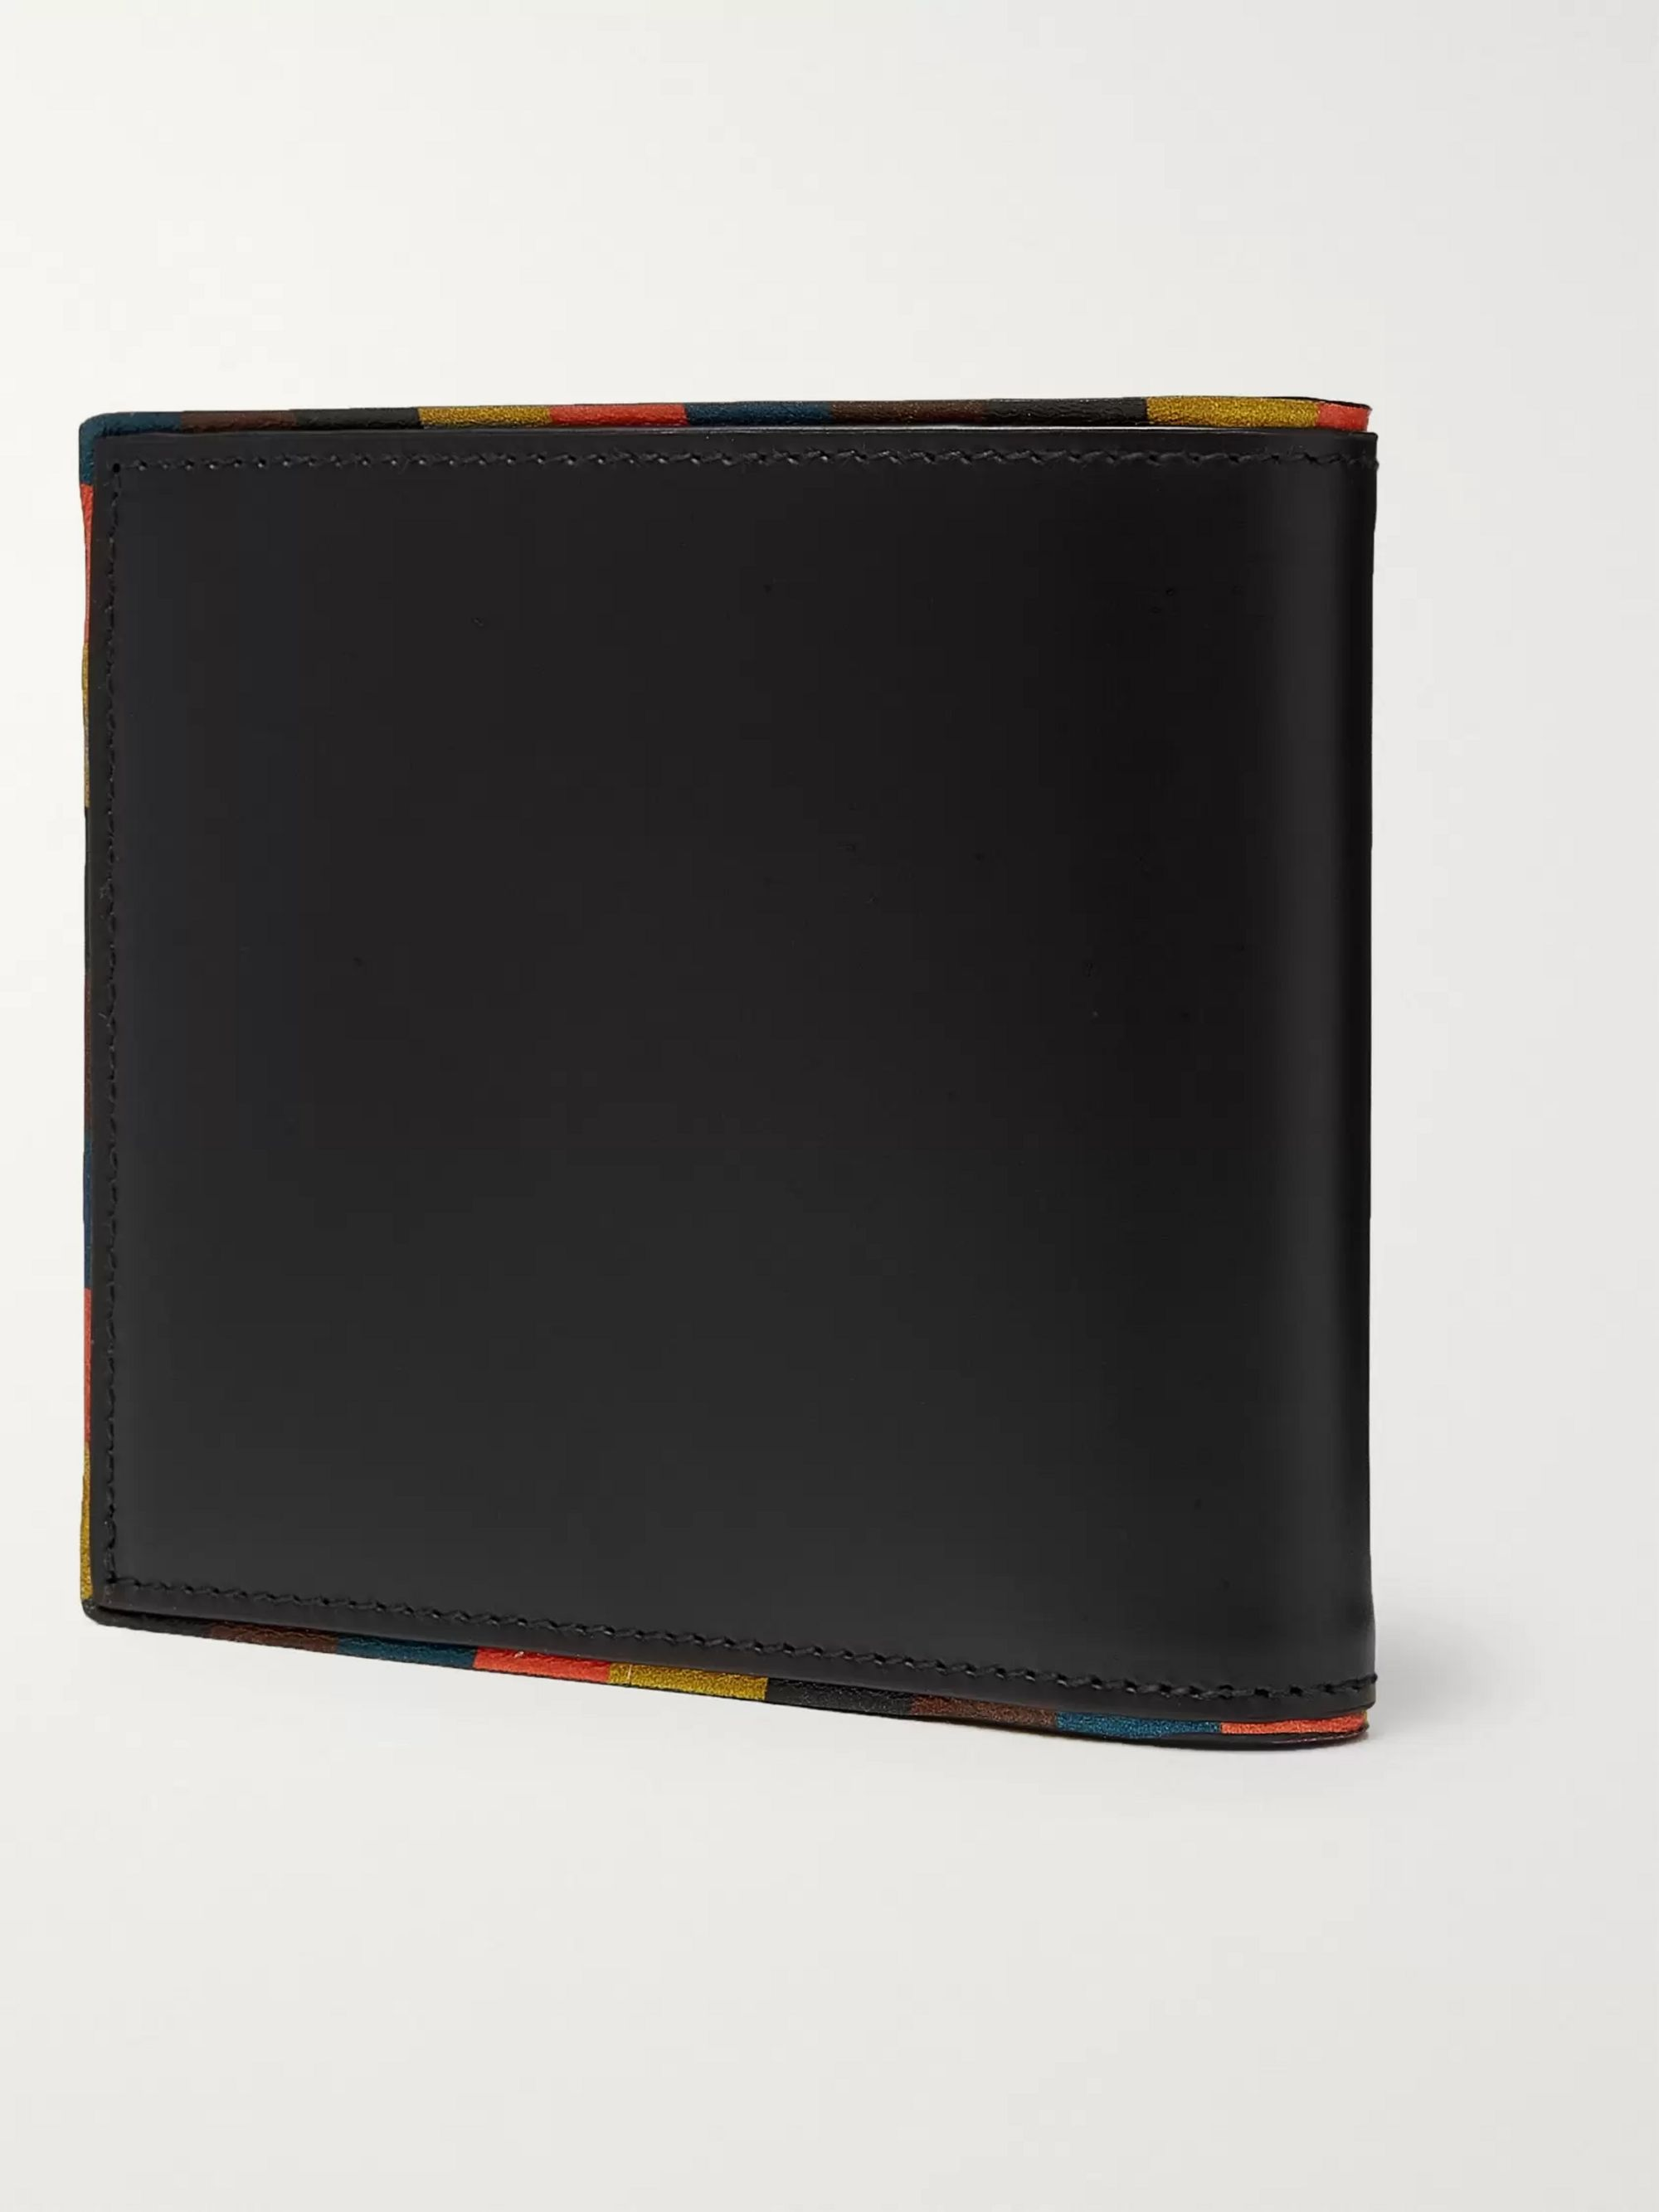 Paul Smith Stripe-Trimmed Leather Billfold Wallet